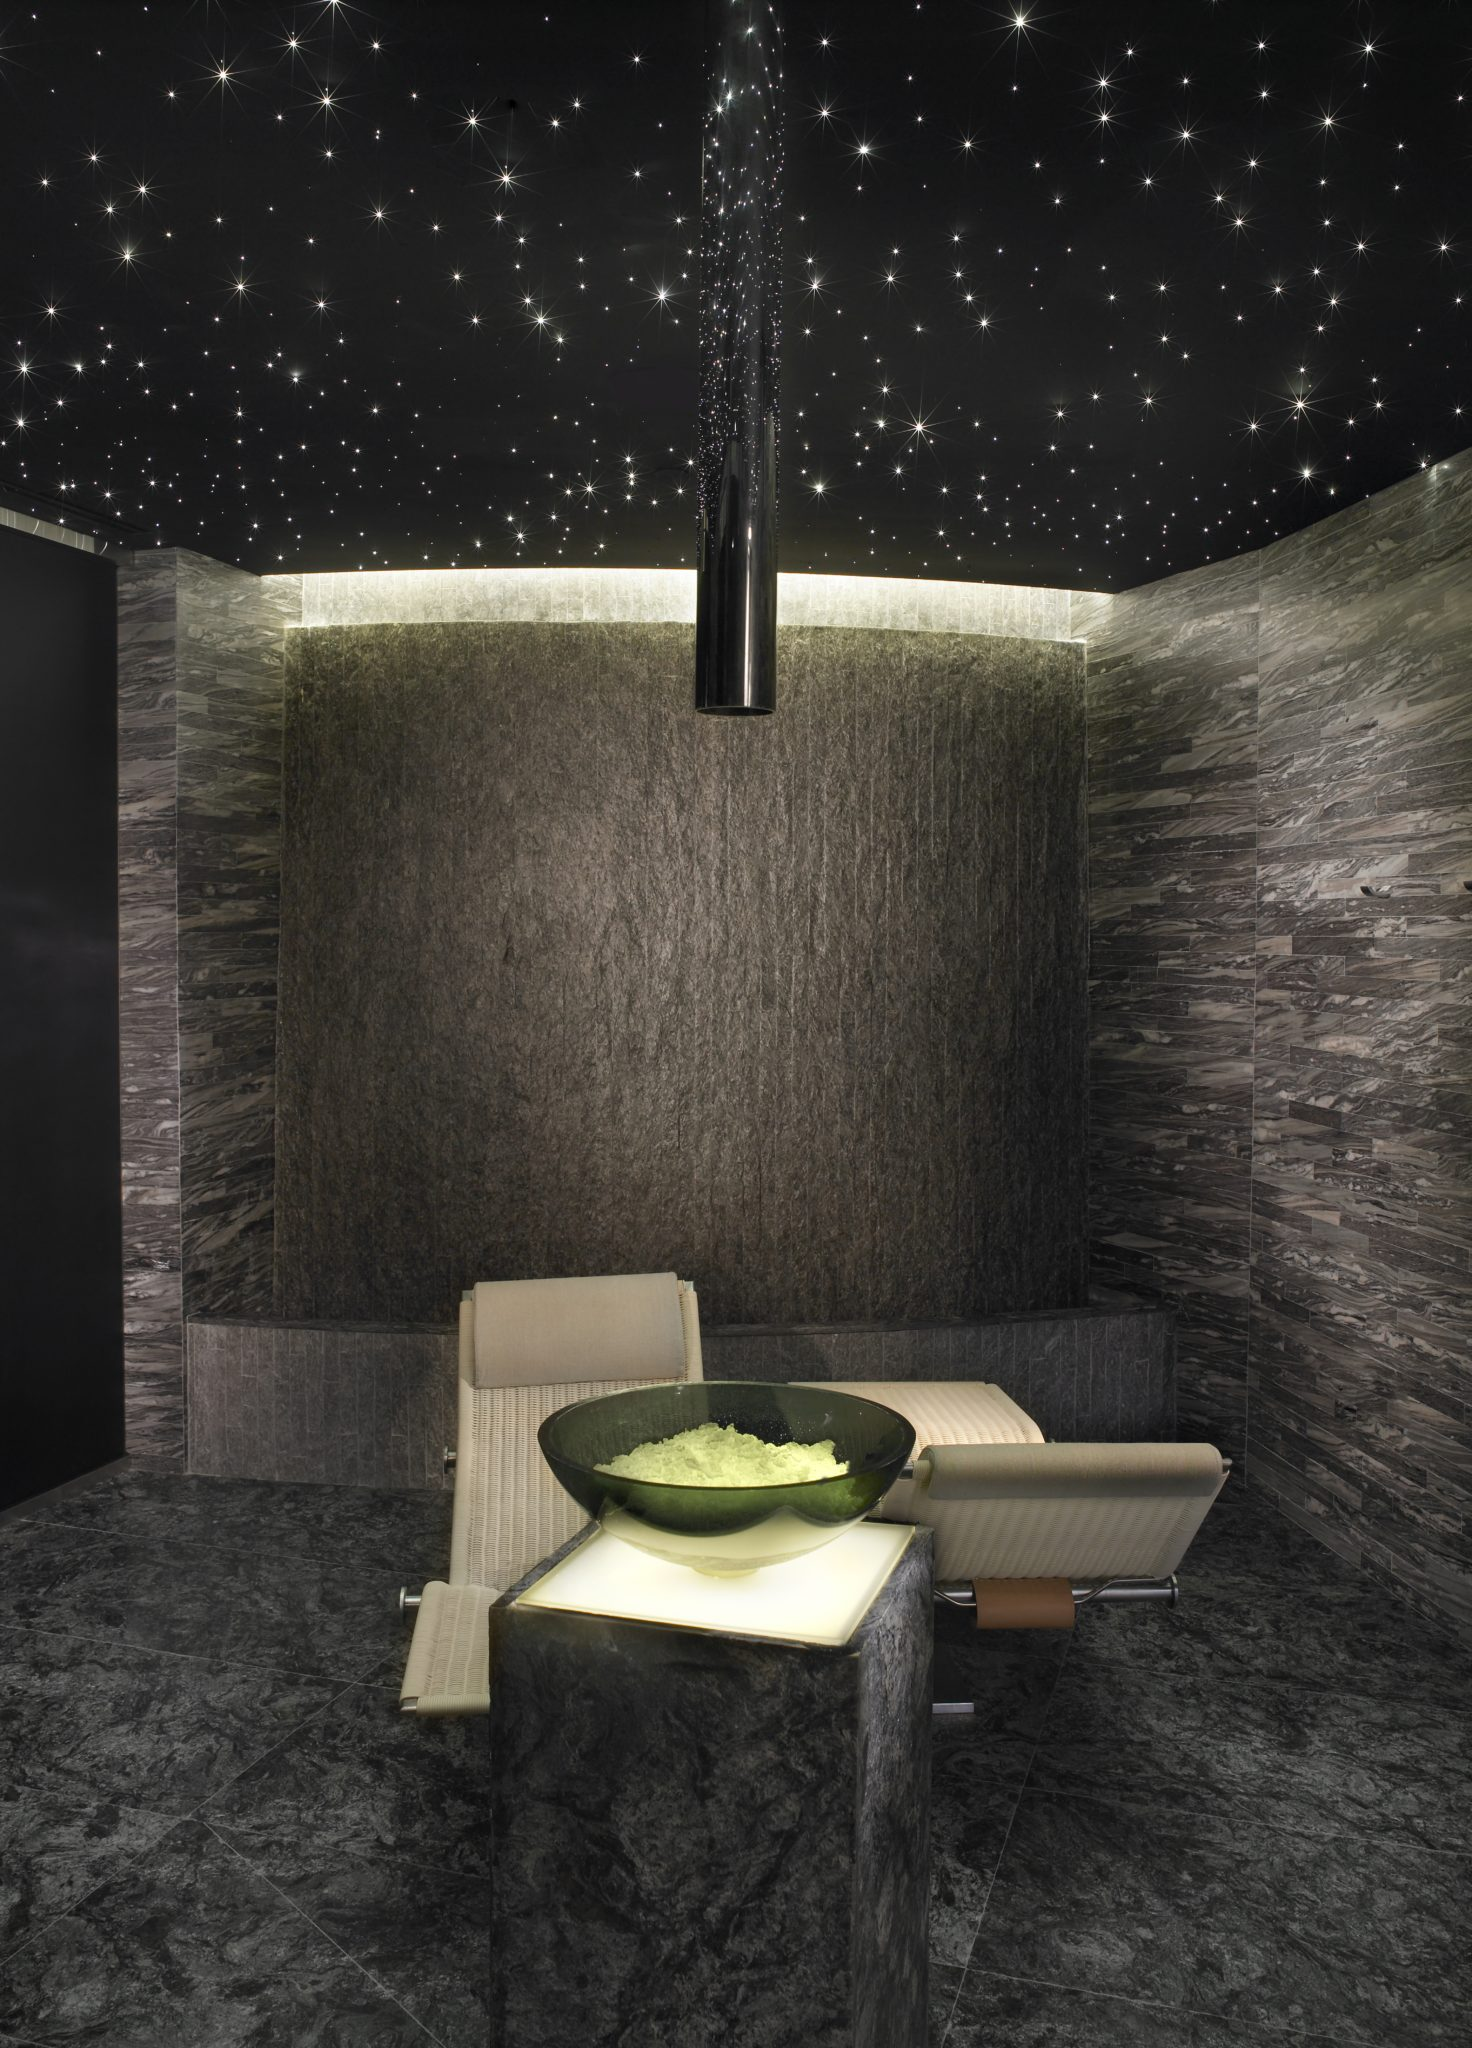 Neutral chaise lounges rest beneath a black star lit ceiling and slate walls. by Michael Wolk Design Associates